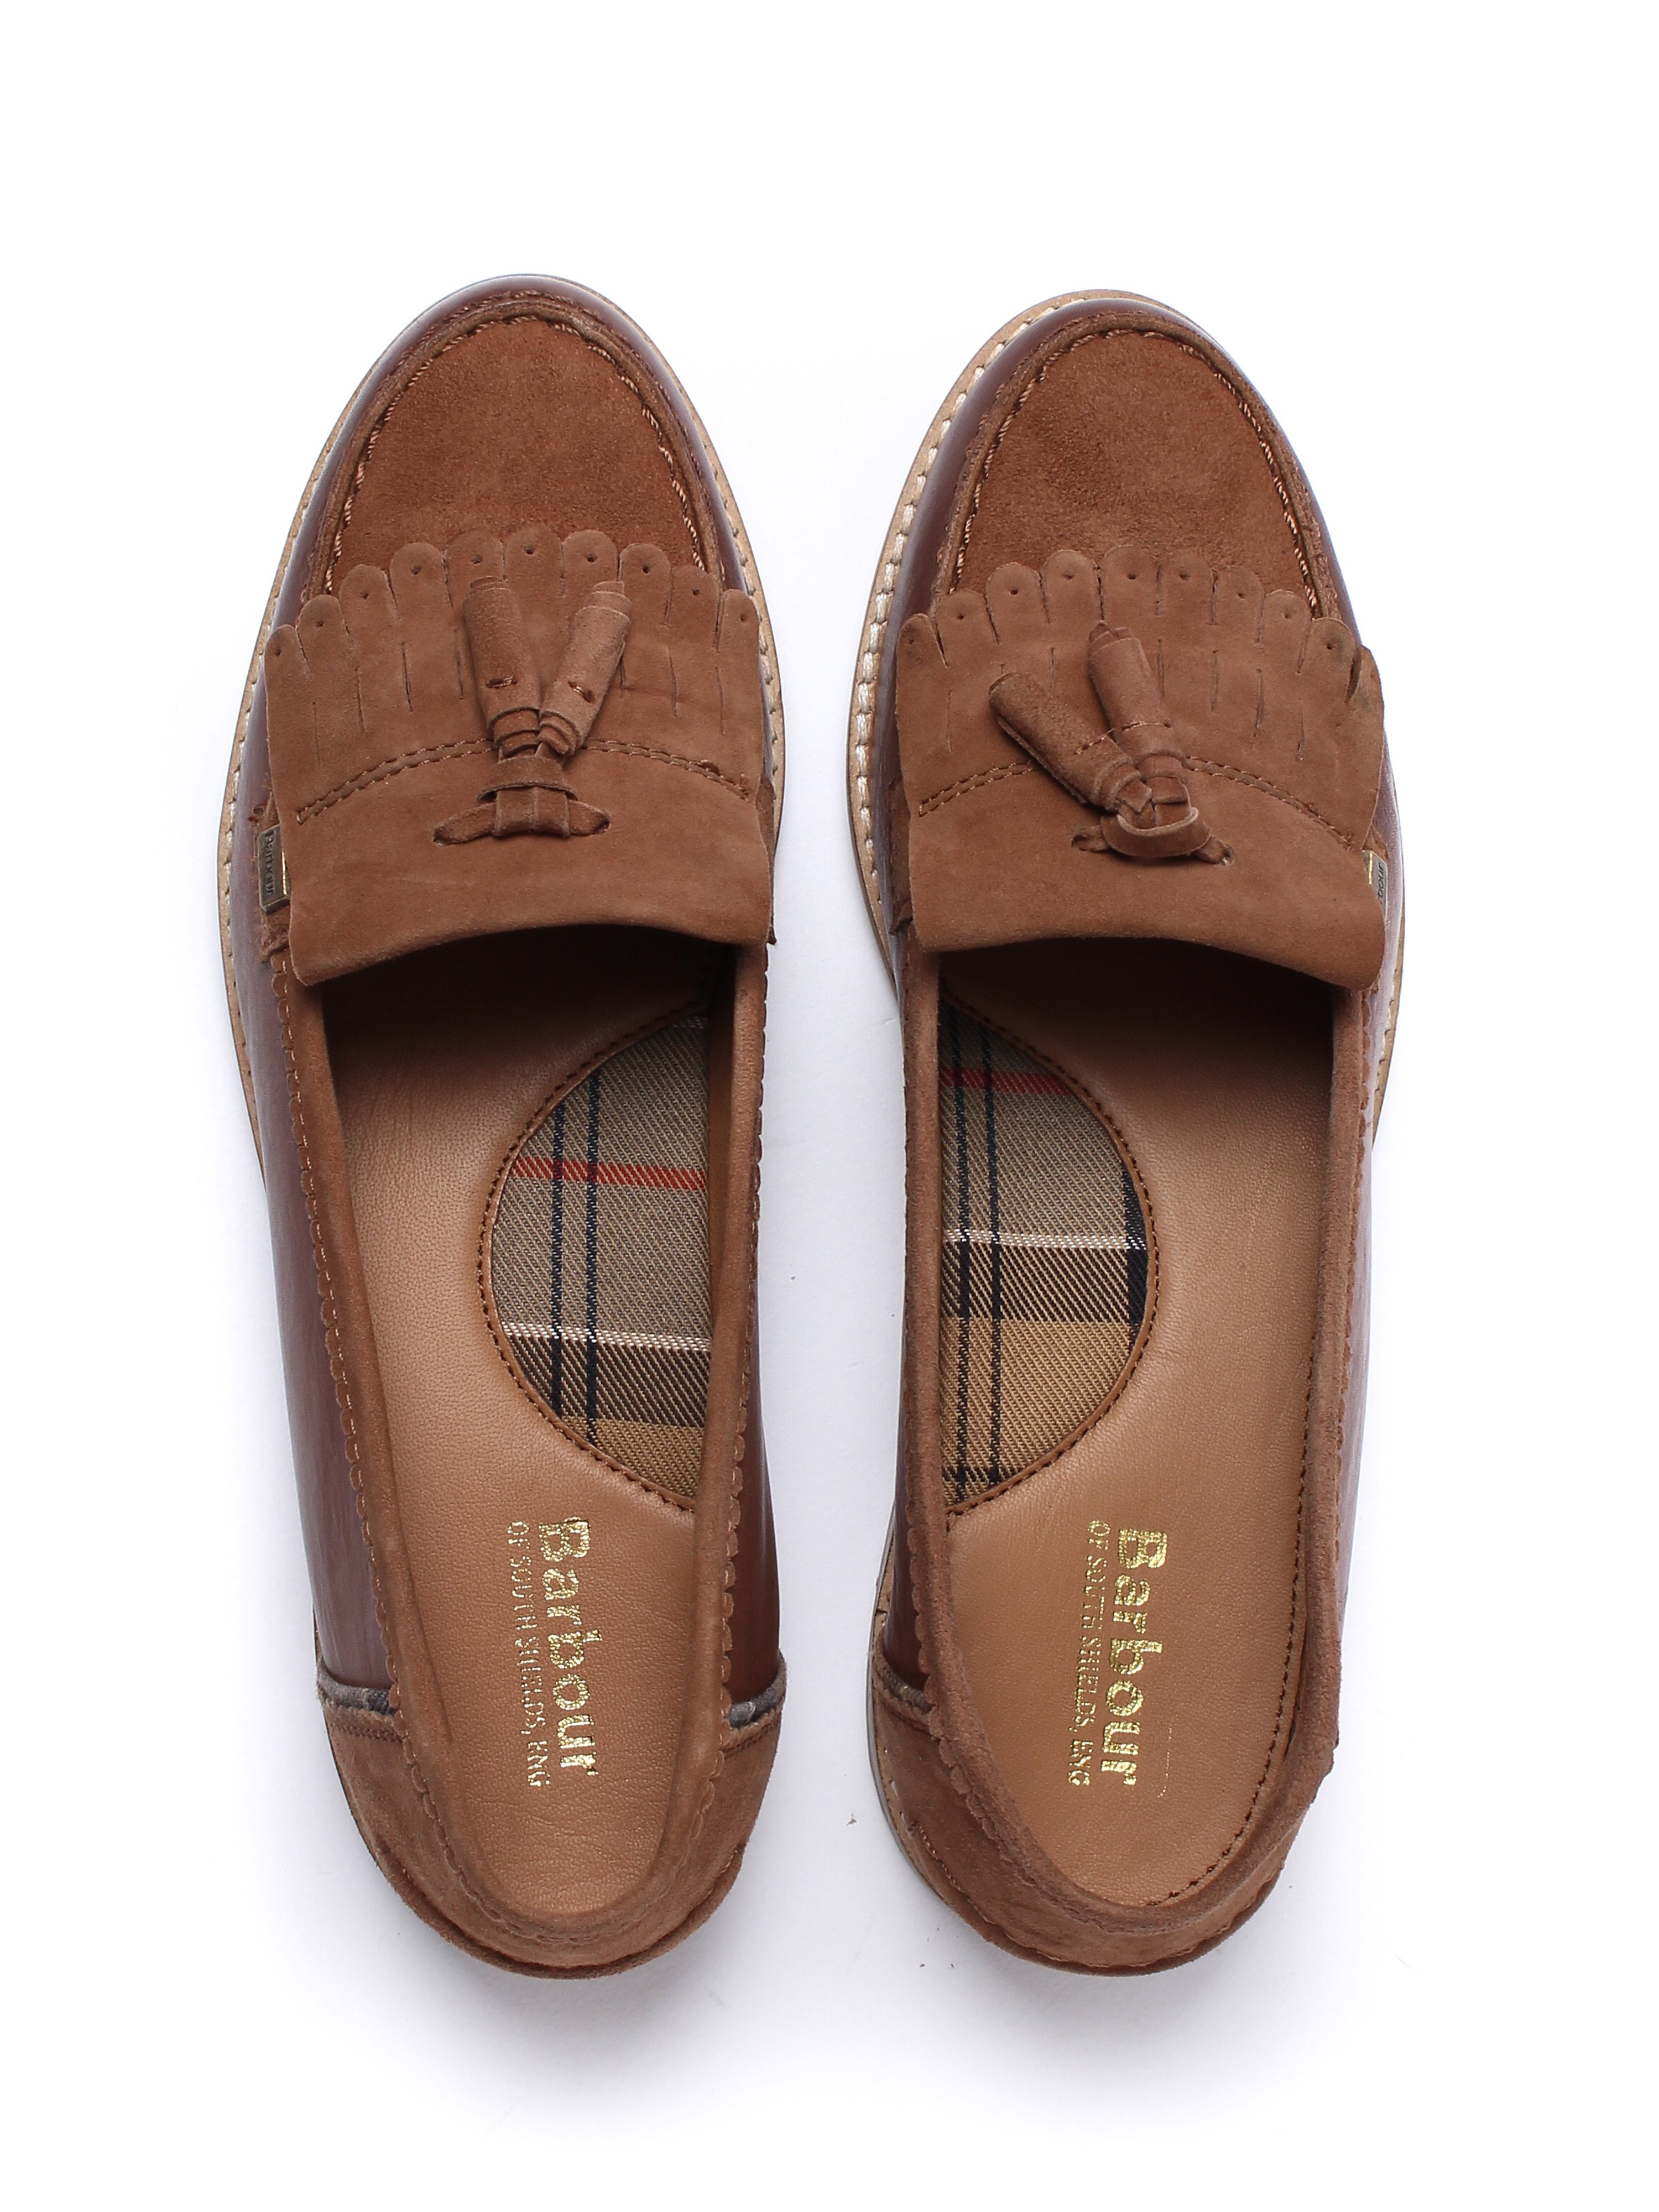 Barbour Women's Naomi Leather & Suede Loafers - Chestnut